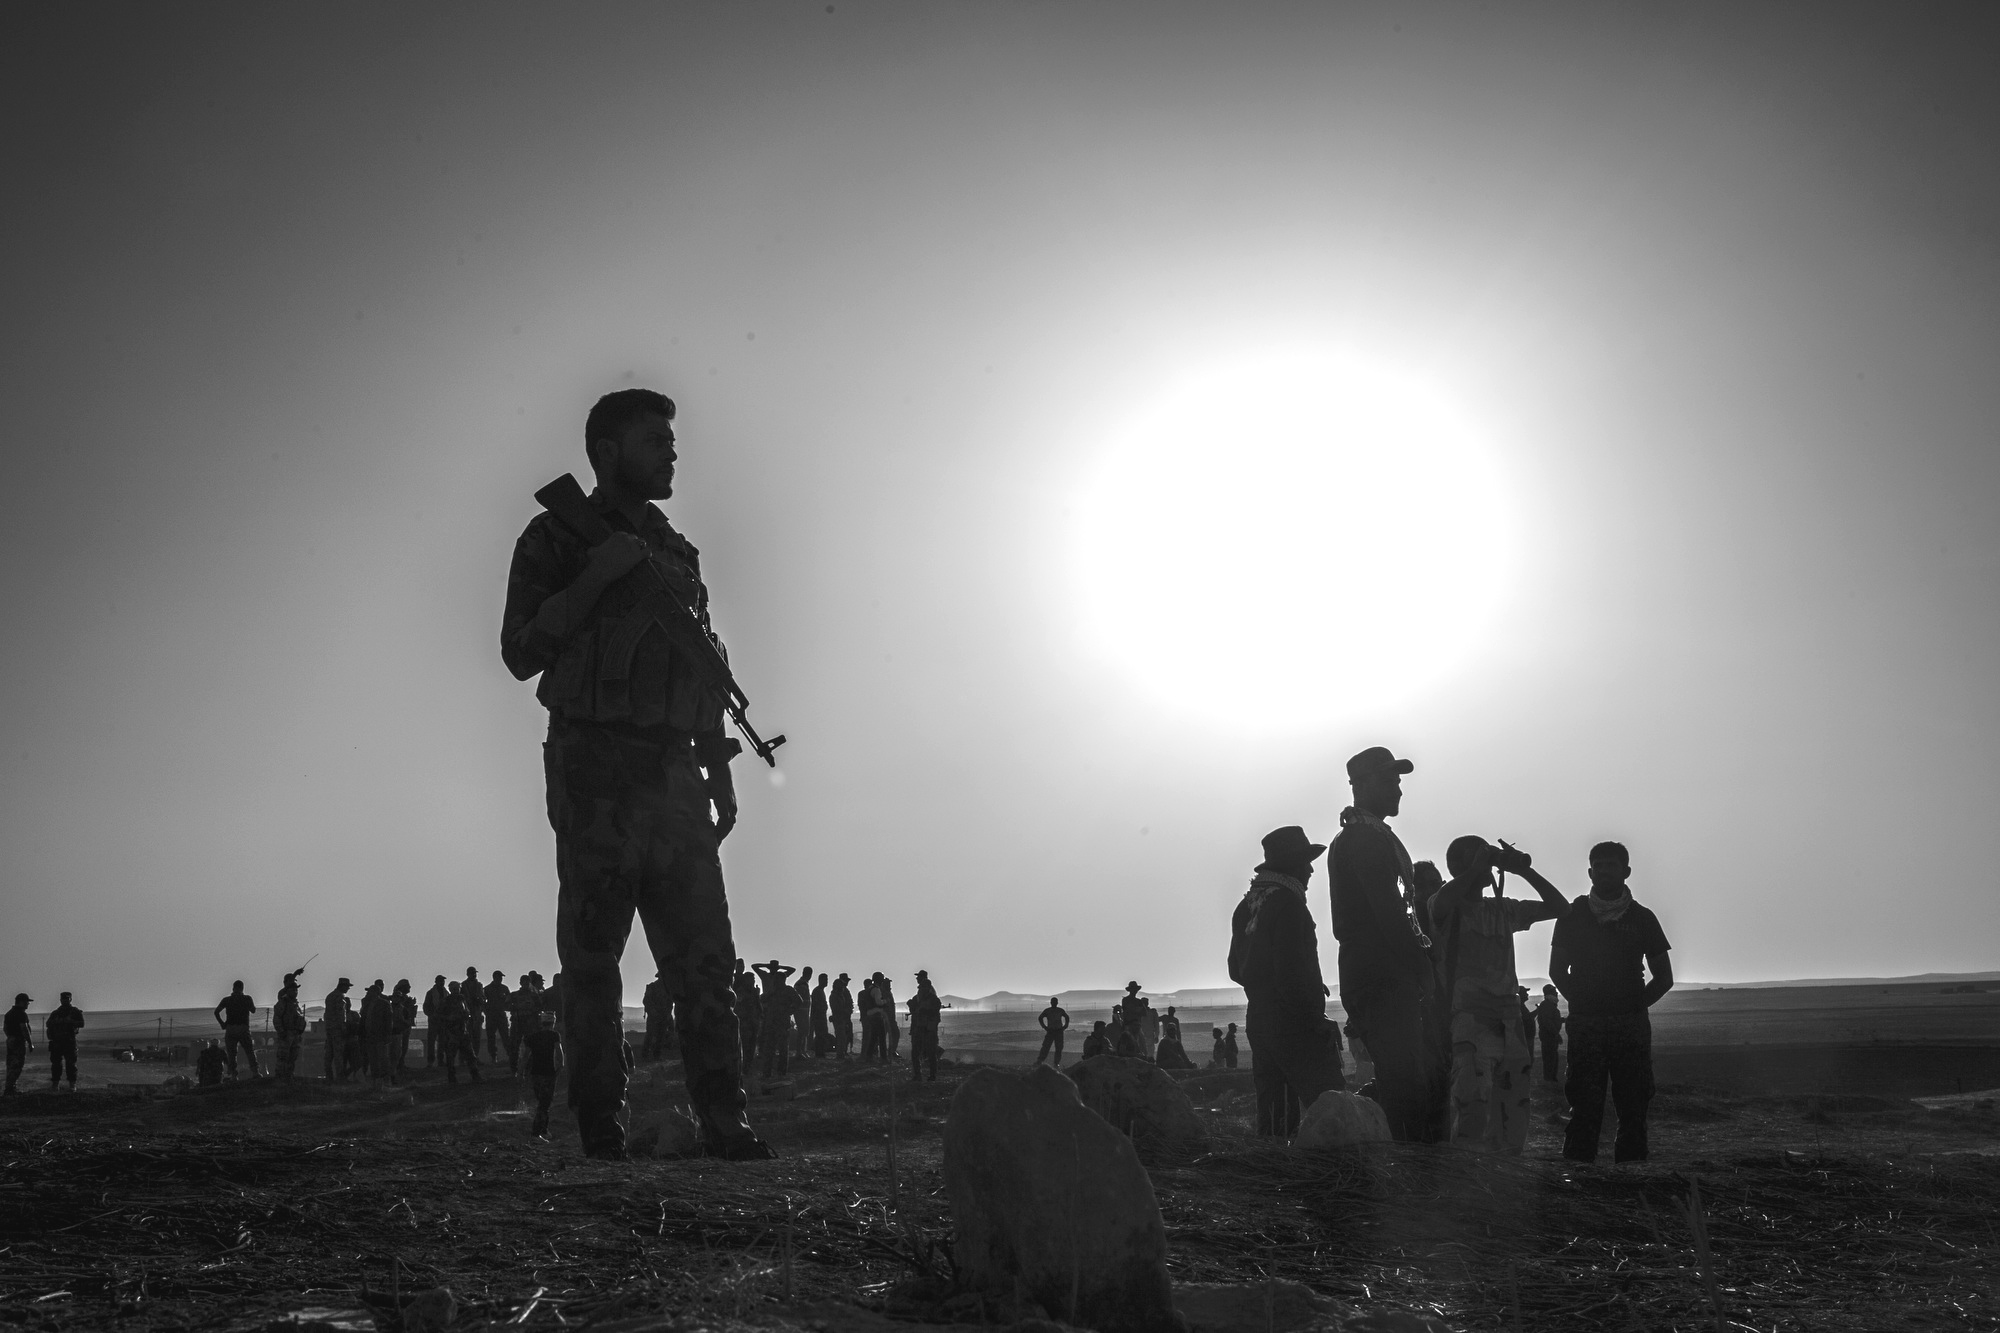 Iraqi soldiers patrol on the frontline outside of de facto ISIS capital of Mosul, Iraq, during early operations of the Mosul offensive, on October 31, 2016. Photo by: Alex Wroblewski/Contributor